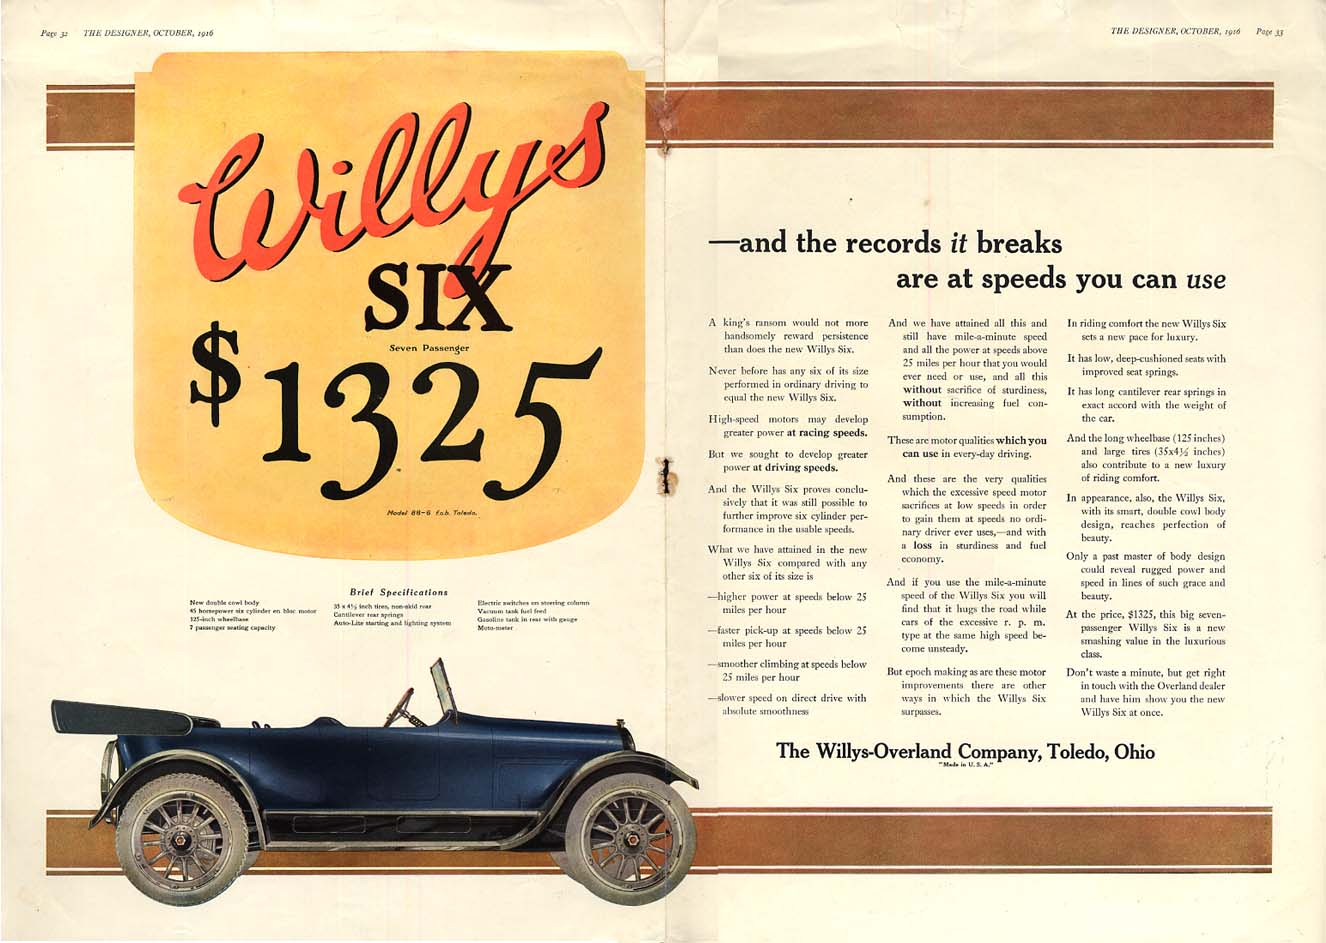 Image for The records it breaks are at speeds you can use Willys Six Touring car ad 1916